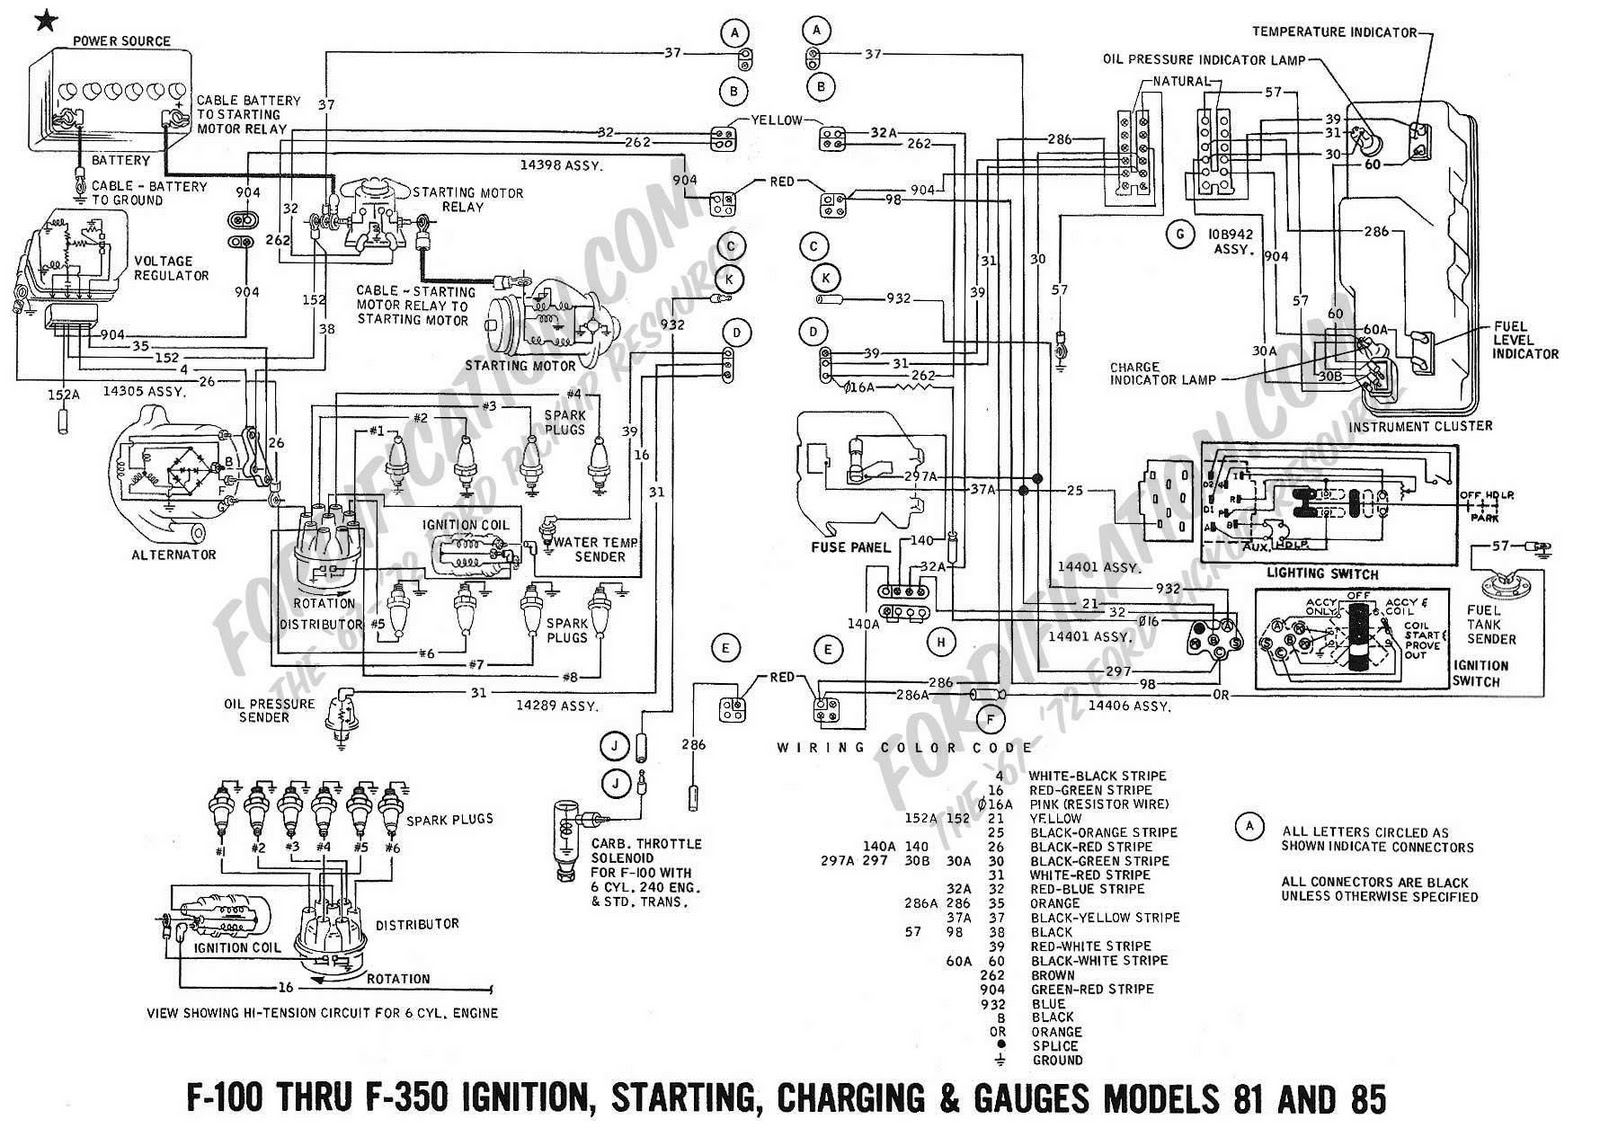 WRG-4232] 65 Pontiac Catalina Wiring Diagram on